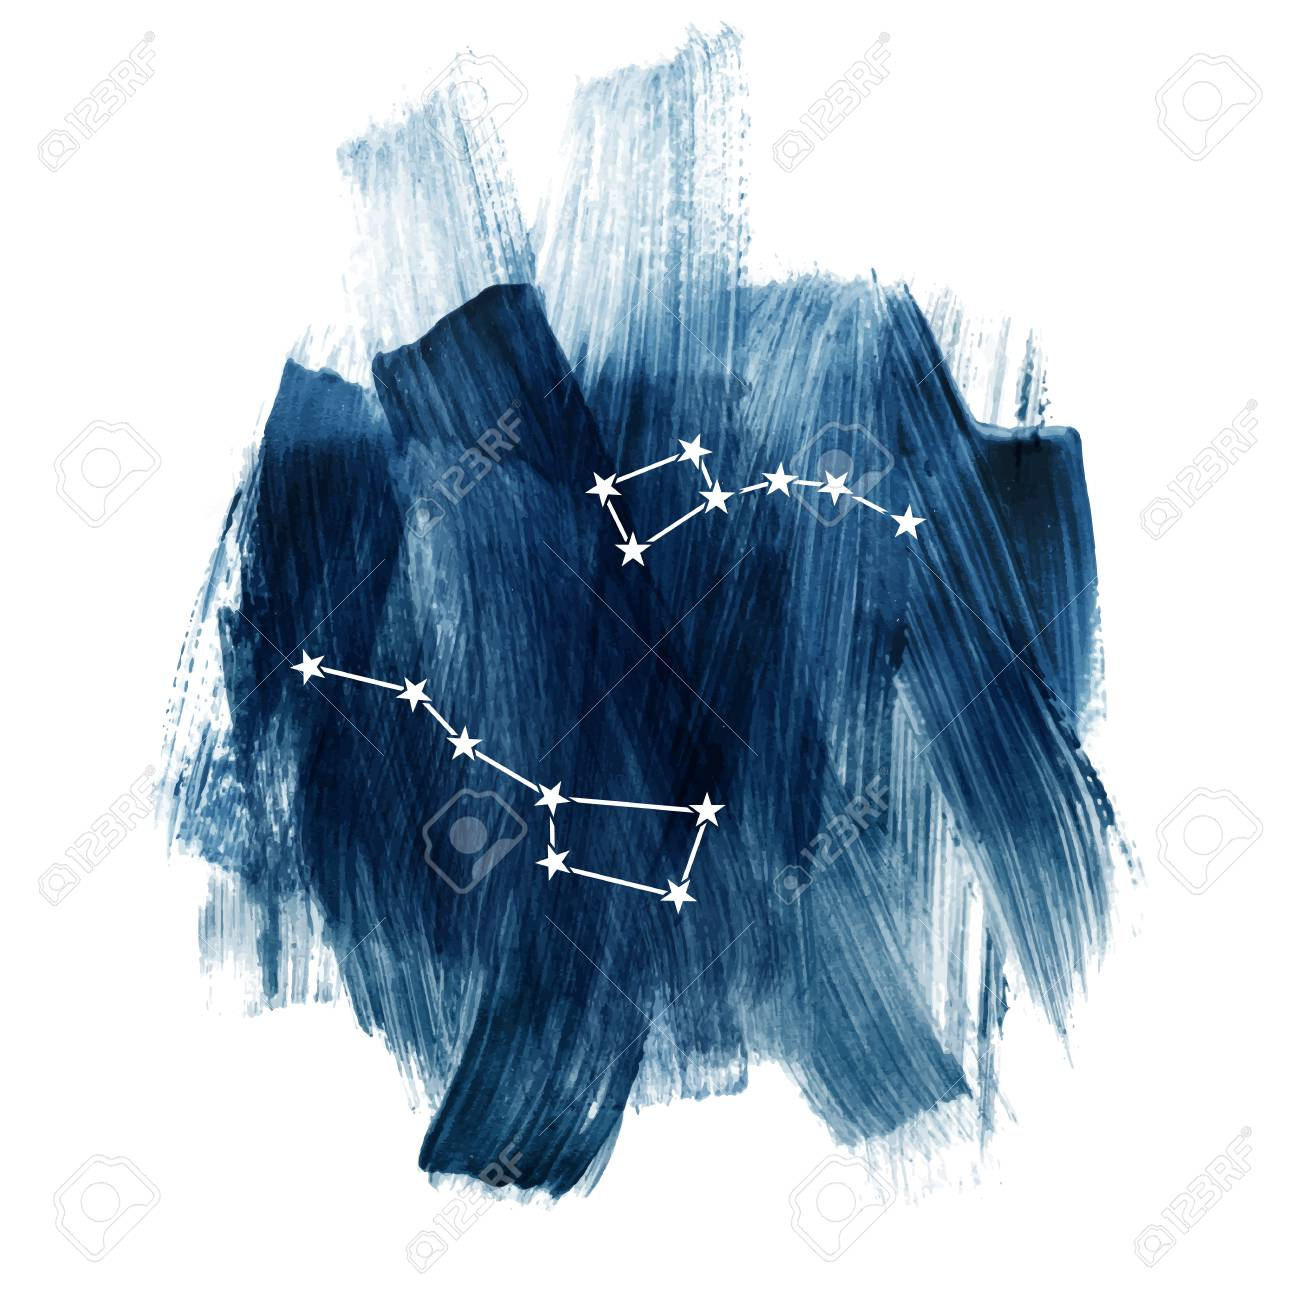 107373228 round composition with big dipper and little dipper constellations over dark blue sky vector illustr round composition with big dipper and little dipper constellations